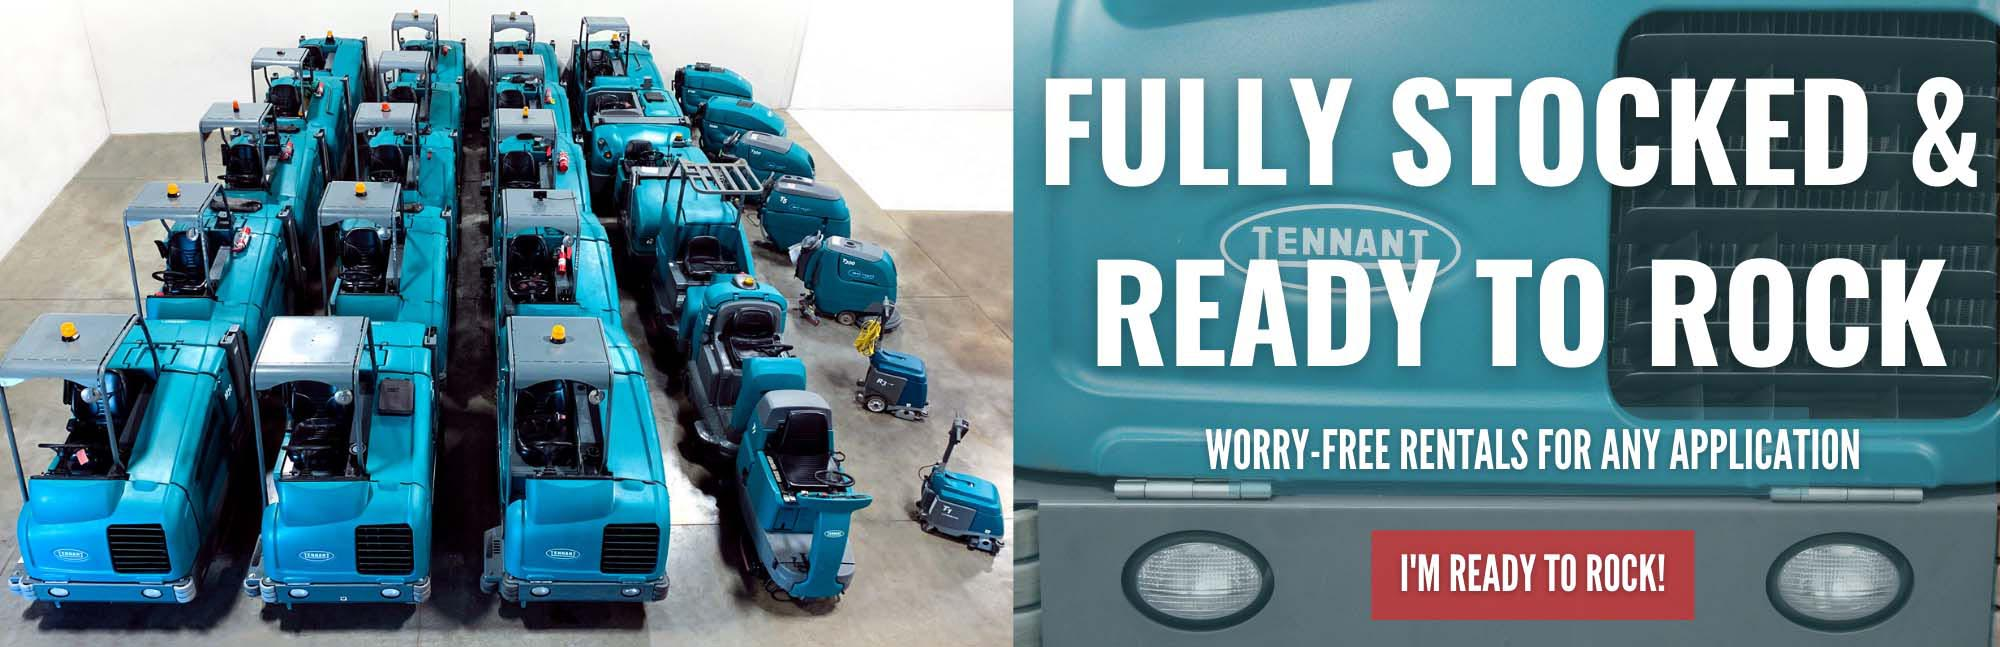 Huge inventory of Tennant Scrubbers and Sweepers available for rent